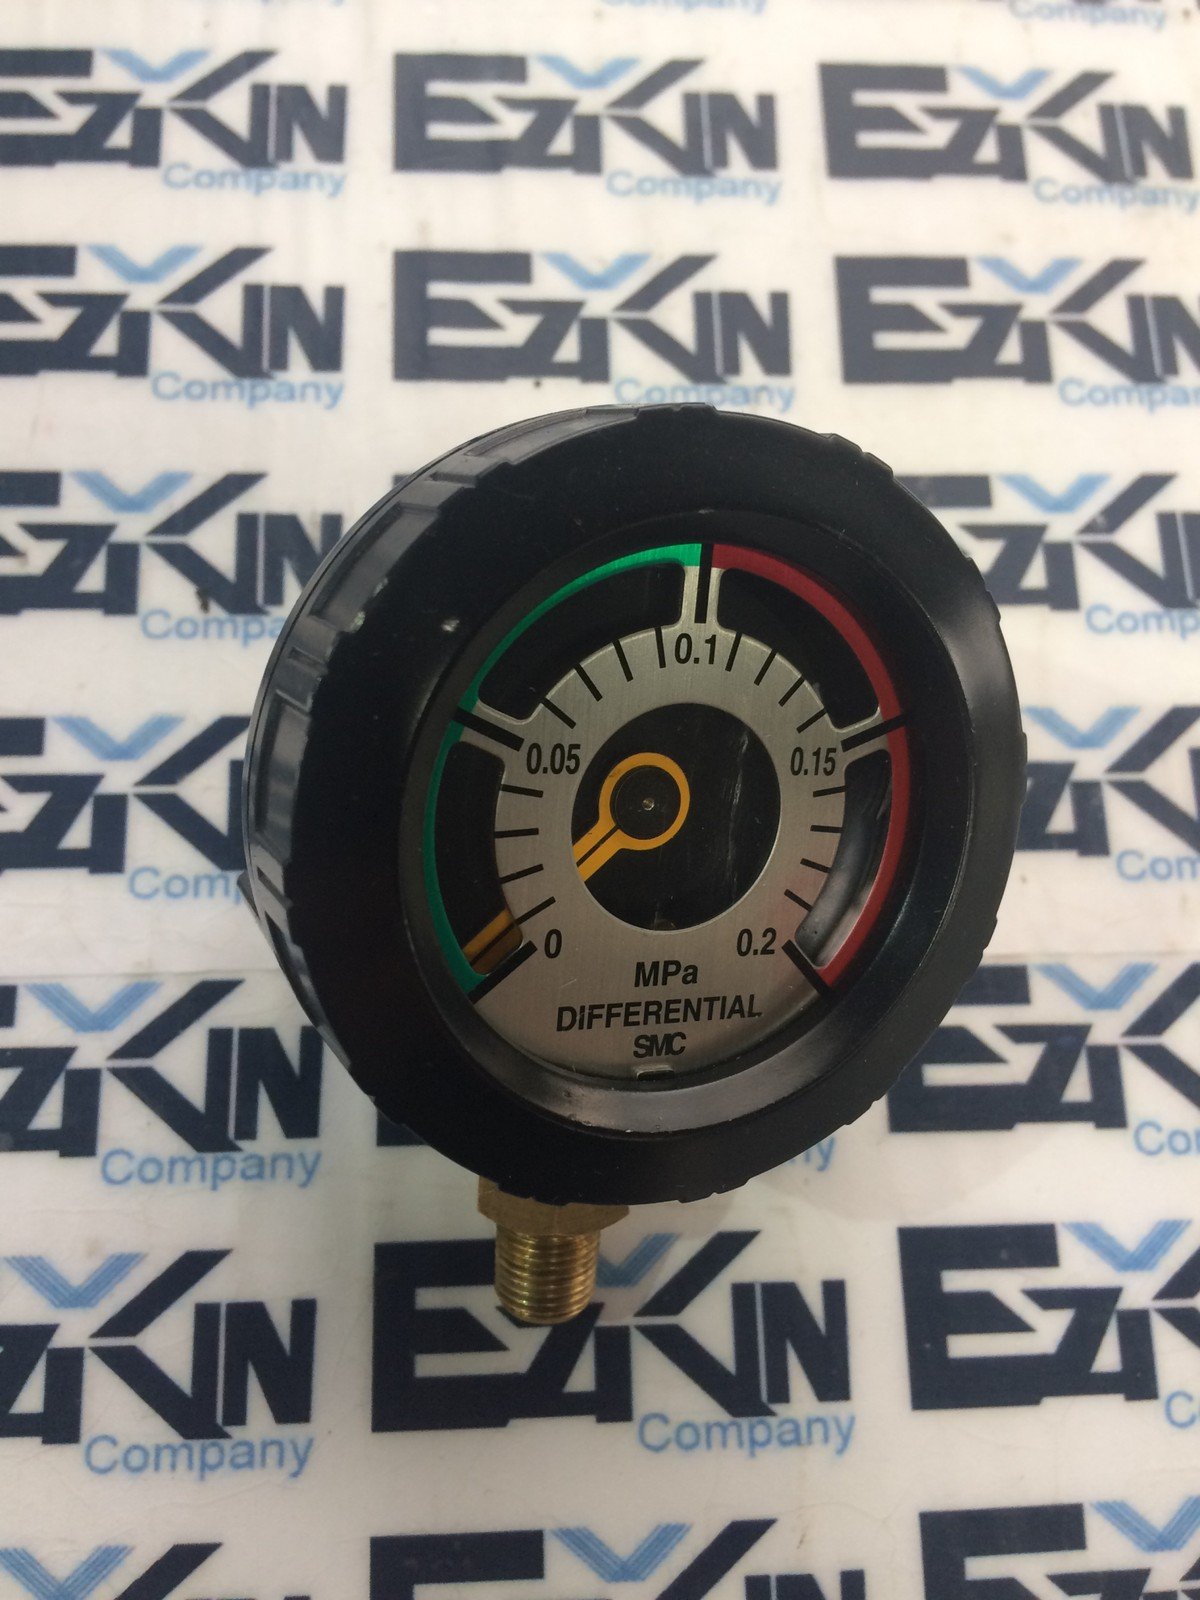 SMC Differential Gauge 0-0.2 and 0-2MPa